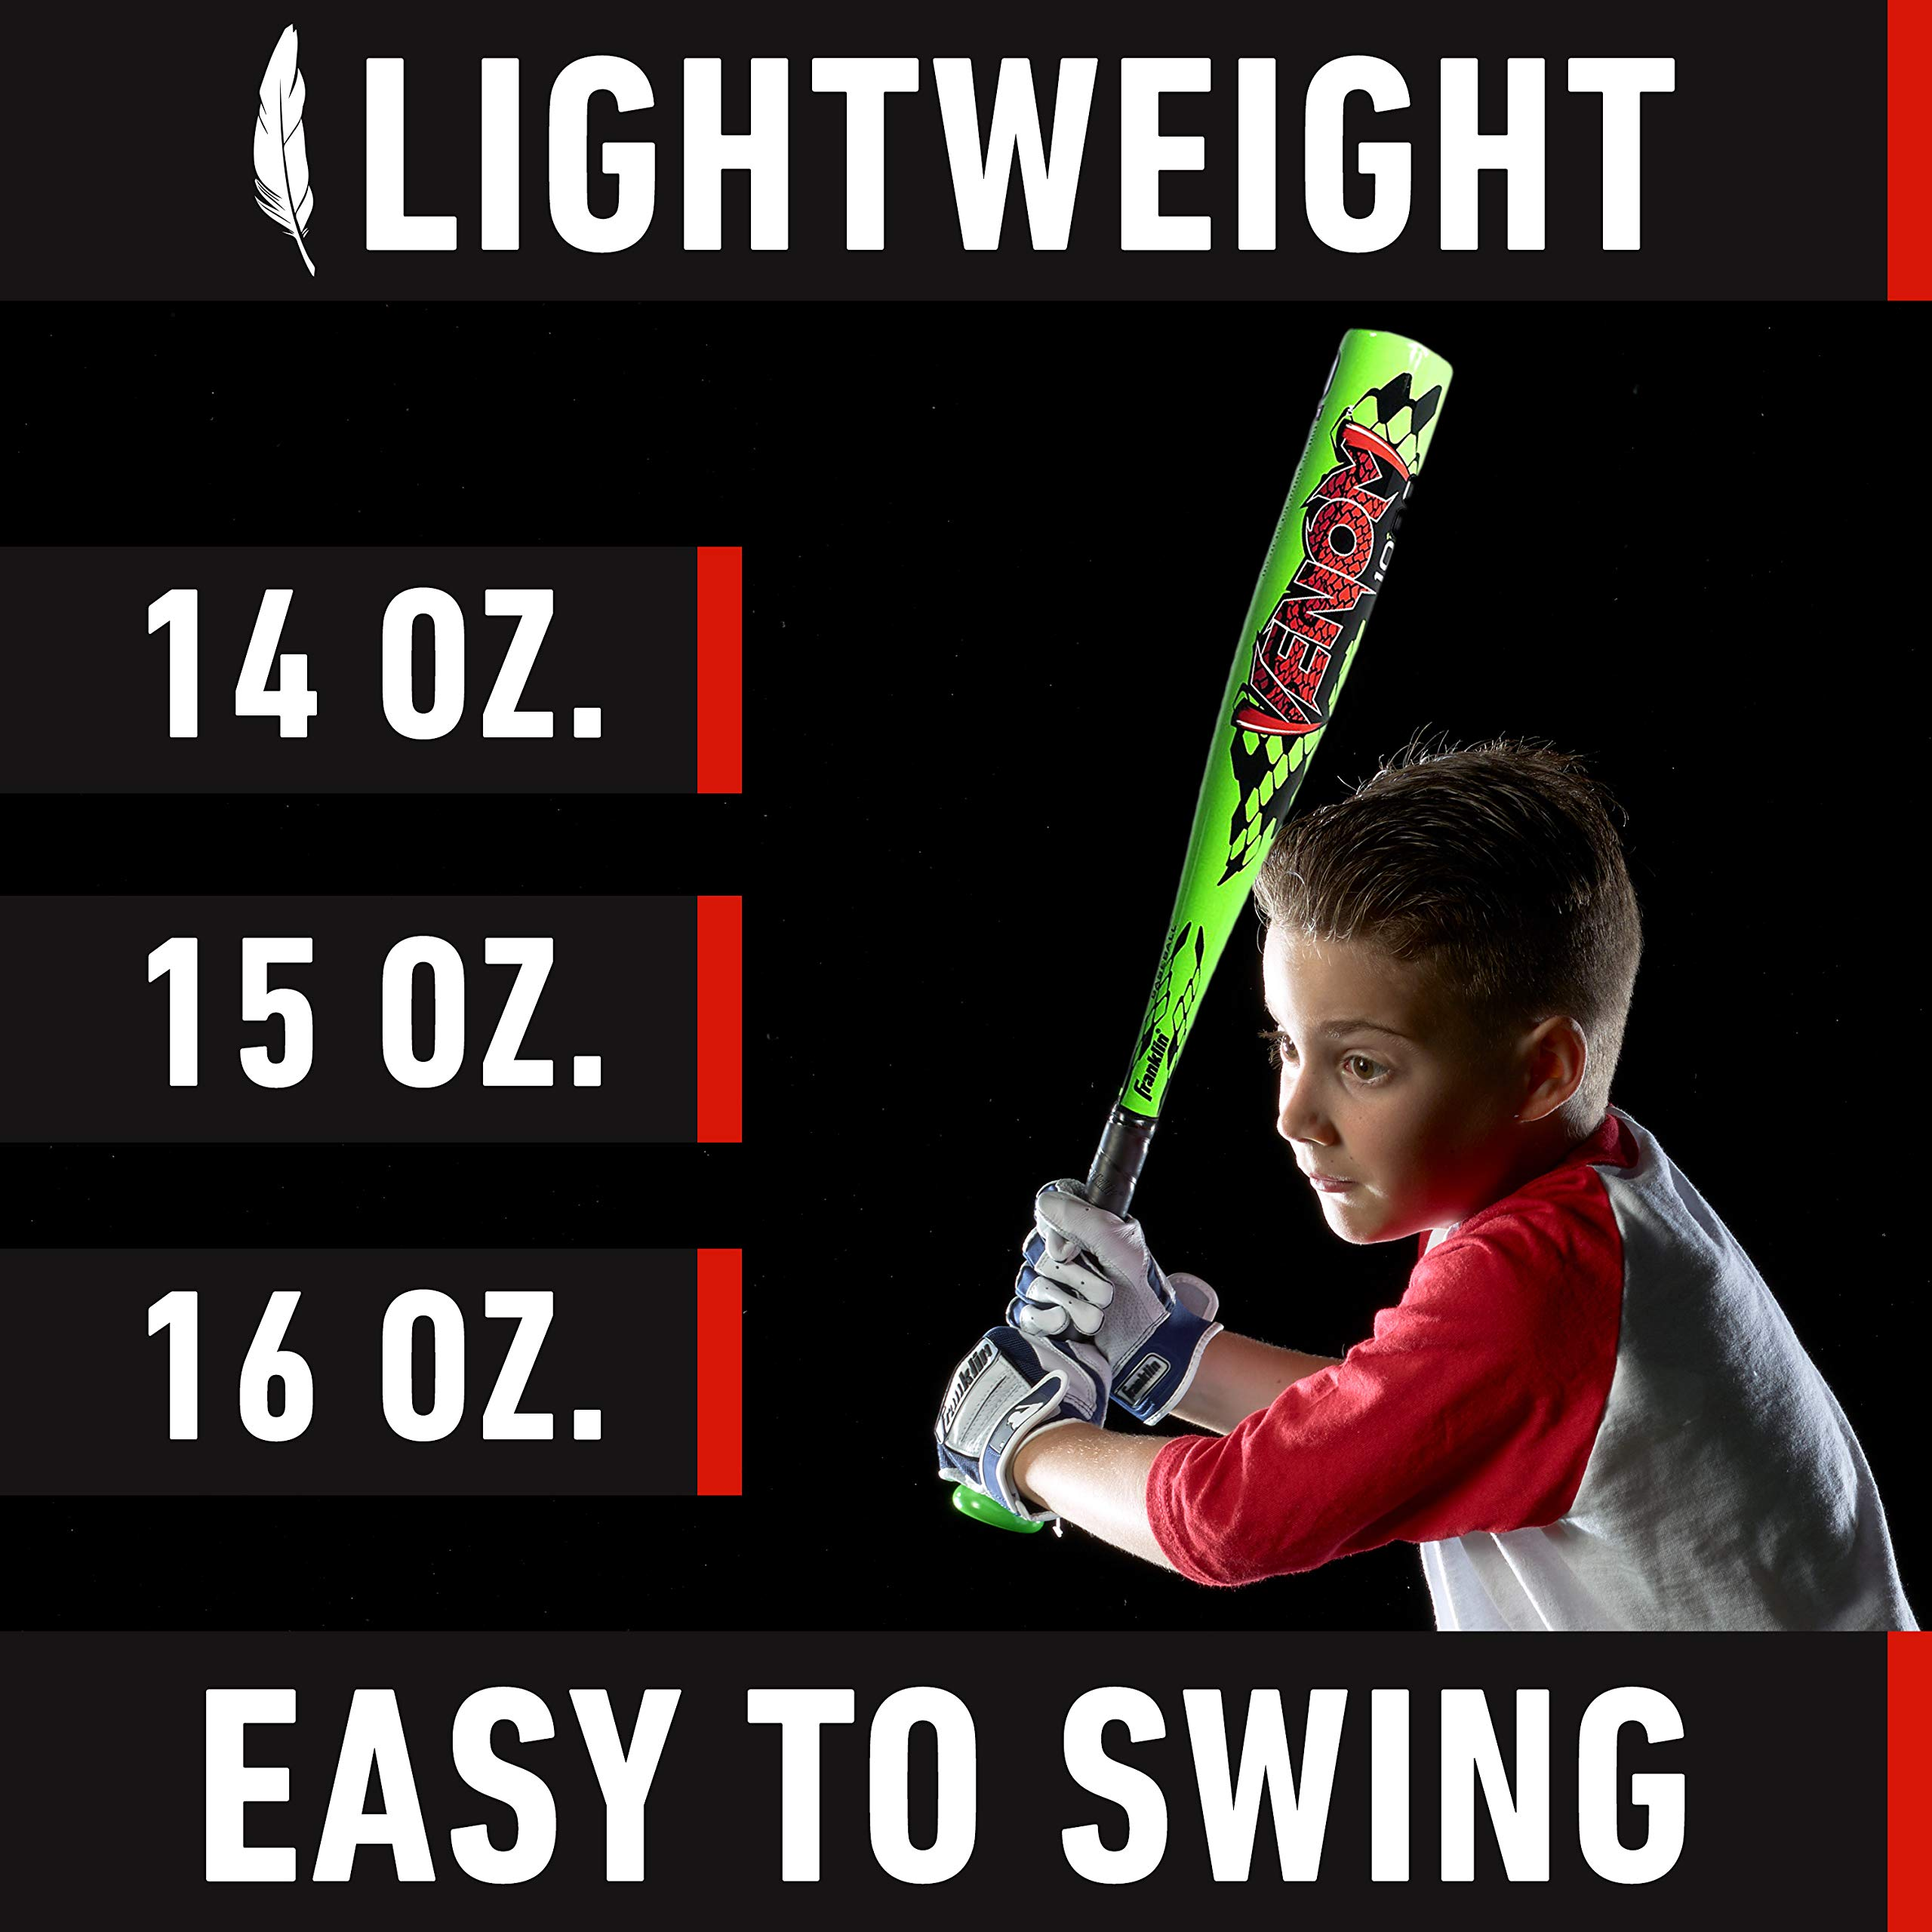 Franklin Sports Venom 1000 Official Teeball Bat - 26'' (-10) - Perfect for Youth Baseball and Teeball by Franklin Sports (Image #7)